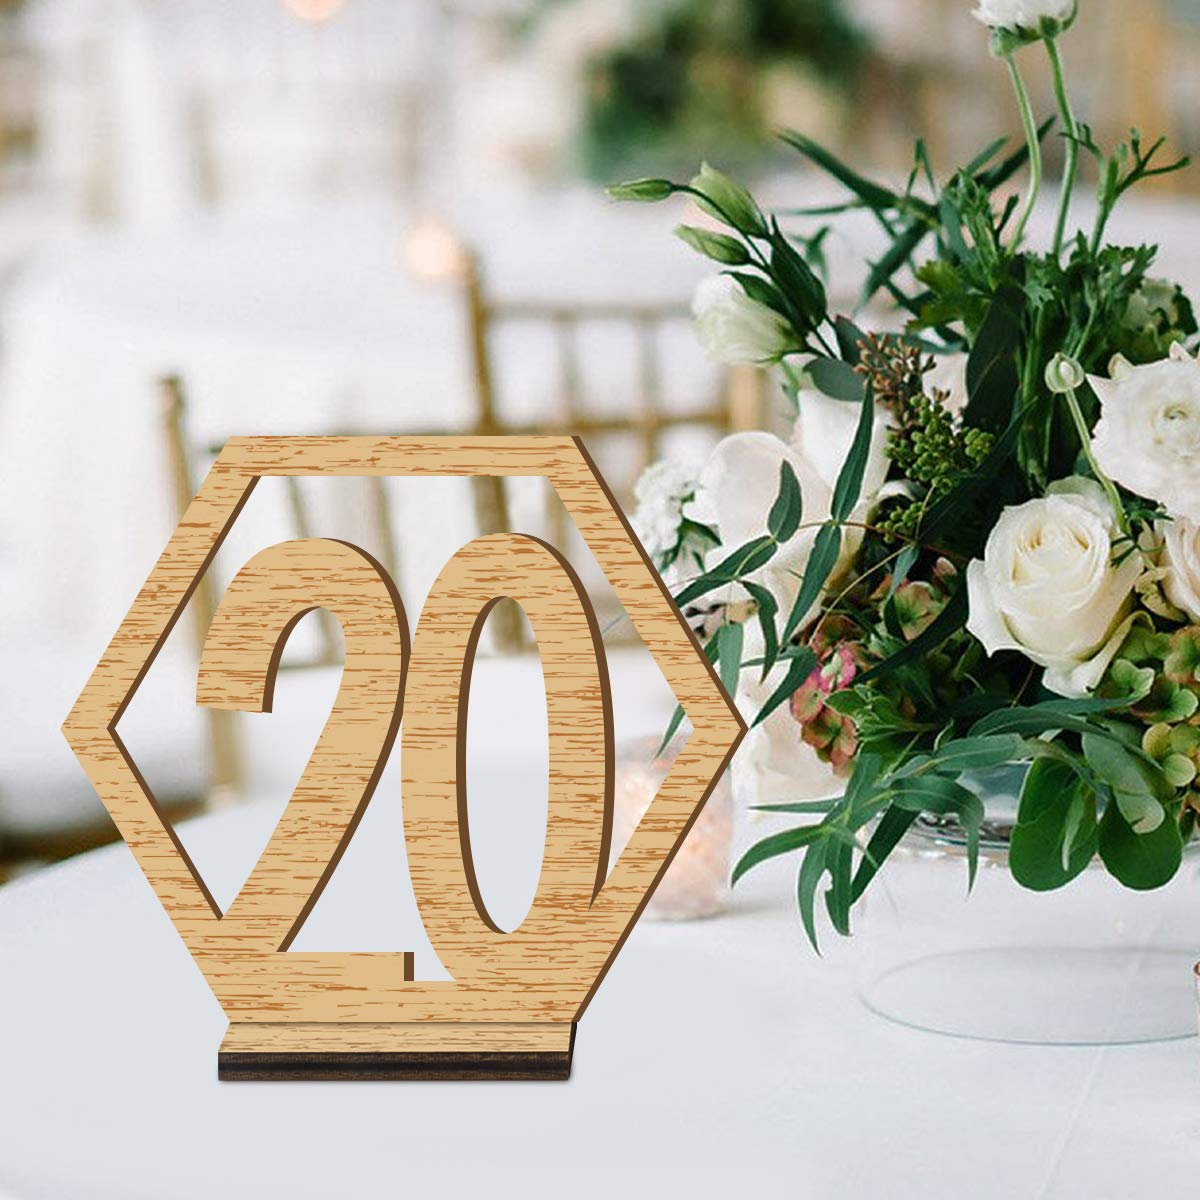 ElekFX Table Numbers, 20pcs 1-20 Wedding Wooden Desk Number Cards with Base Party Card Double Sided Design Table Holder for Wedding Reception and Decoration